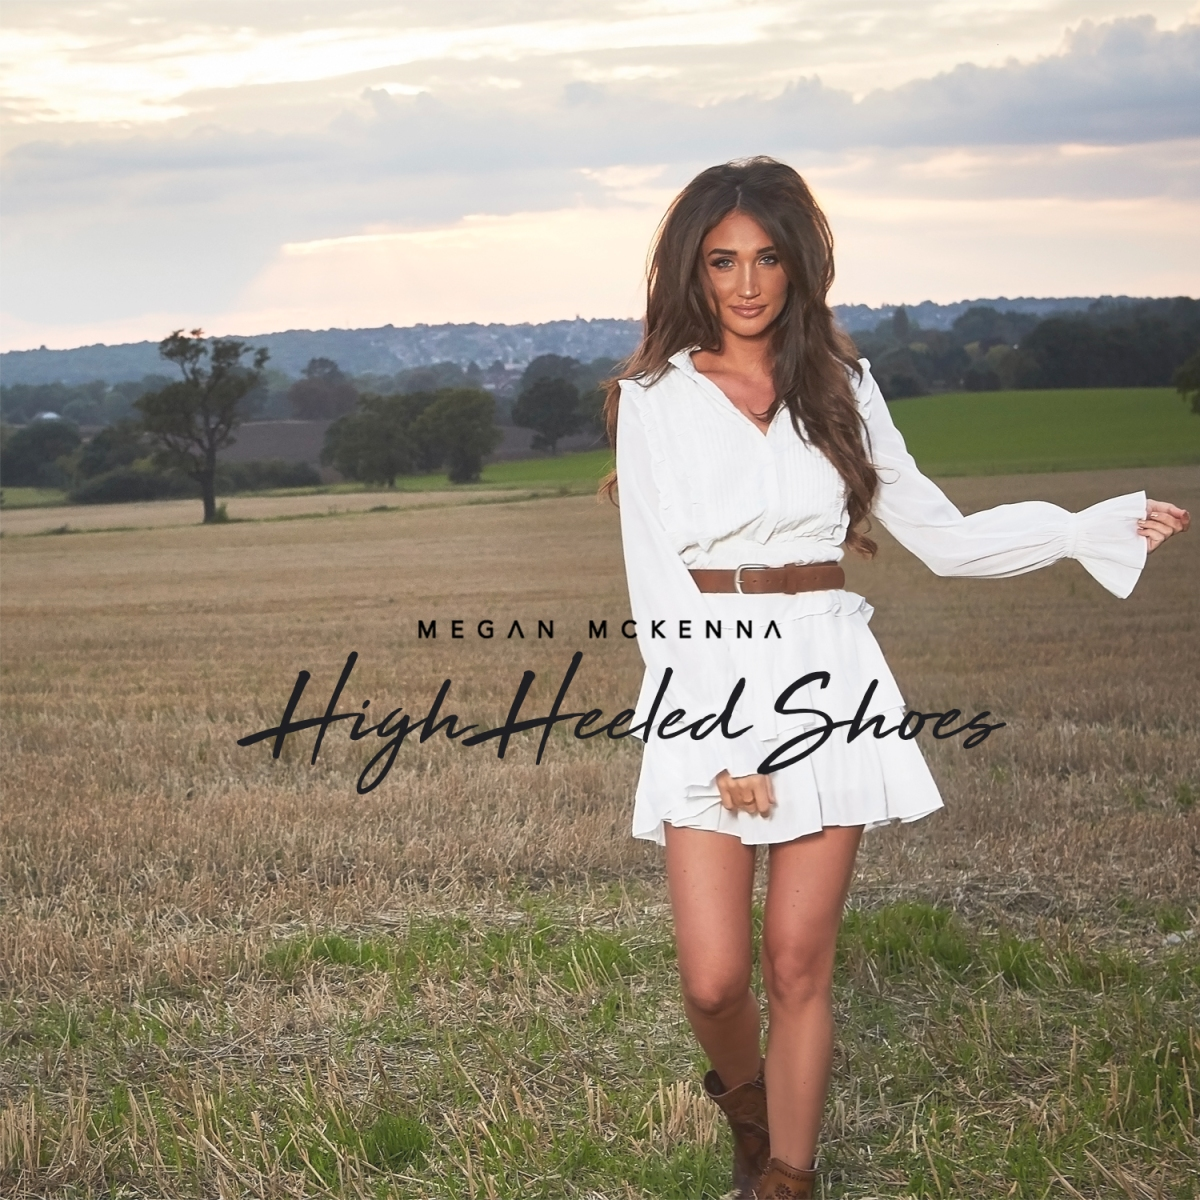 Megan McKenna - High Heeled Shoes/Far Cry From Love - Single Review